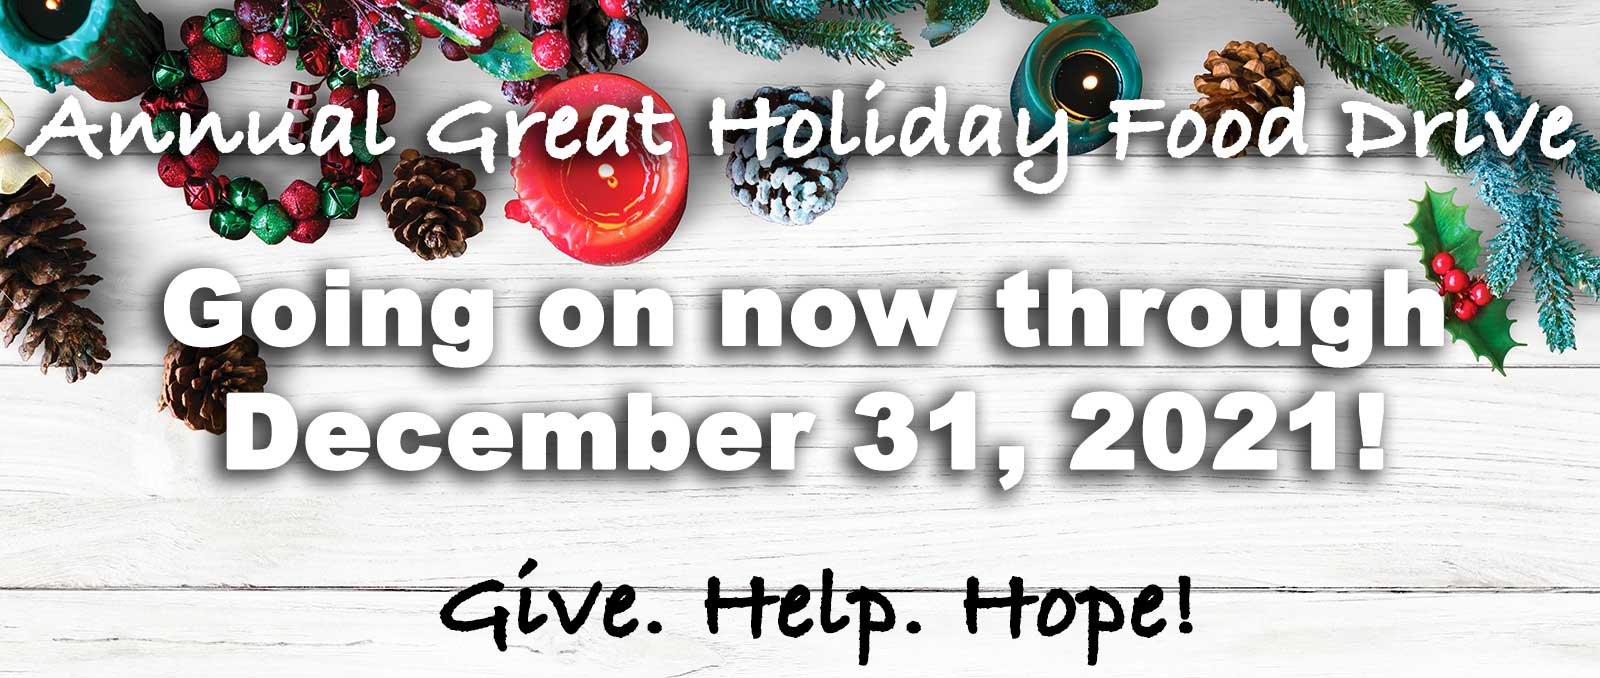 great holiday food drive give help hople!